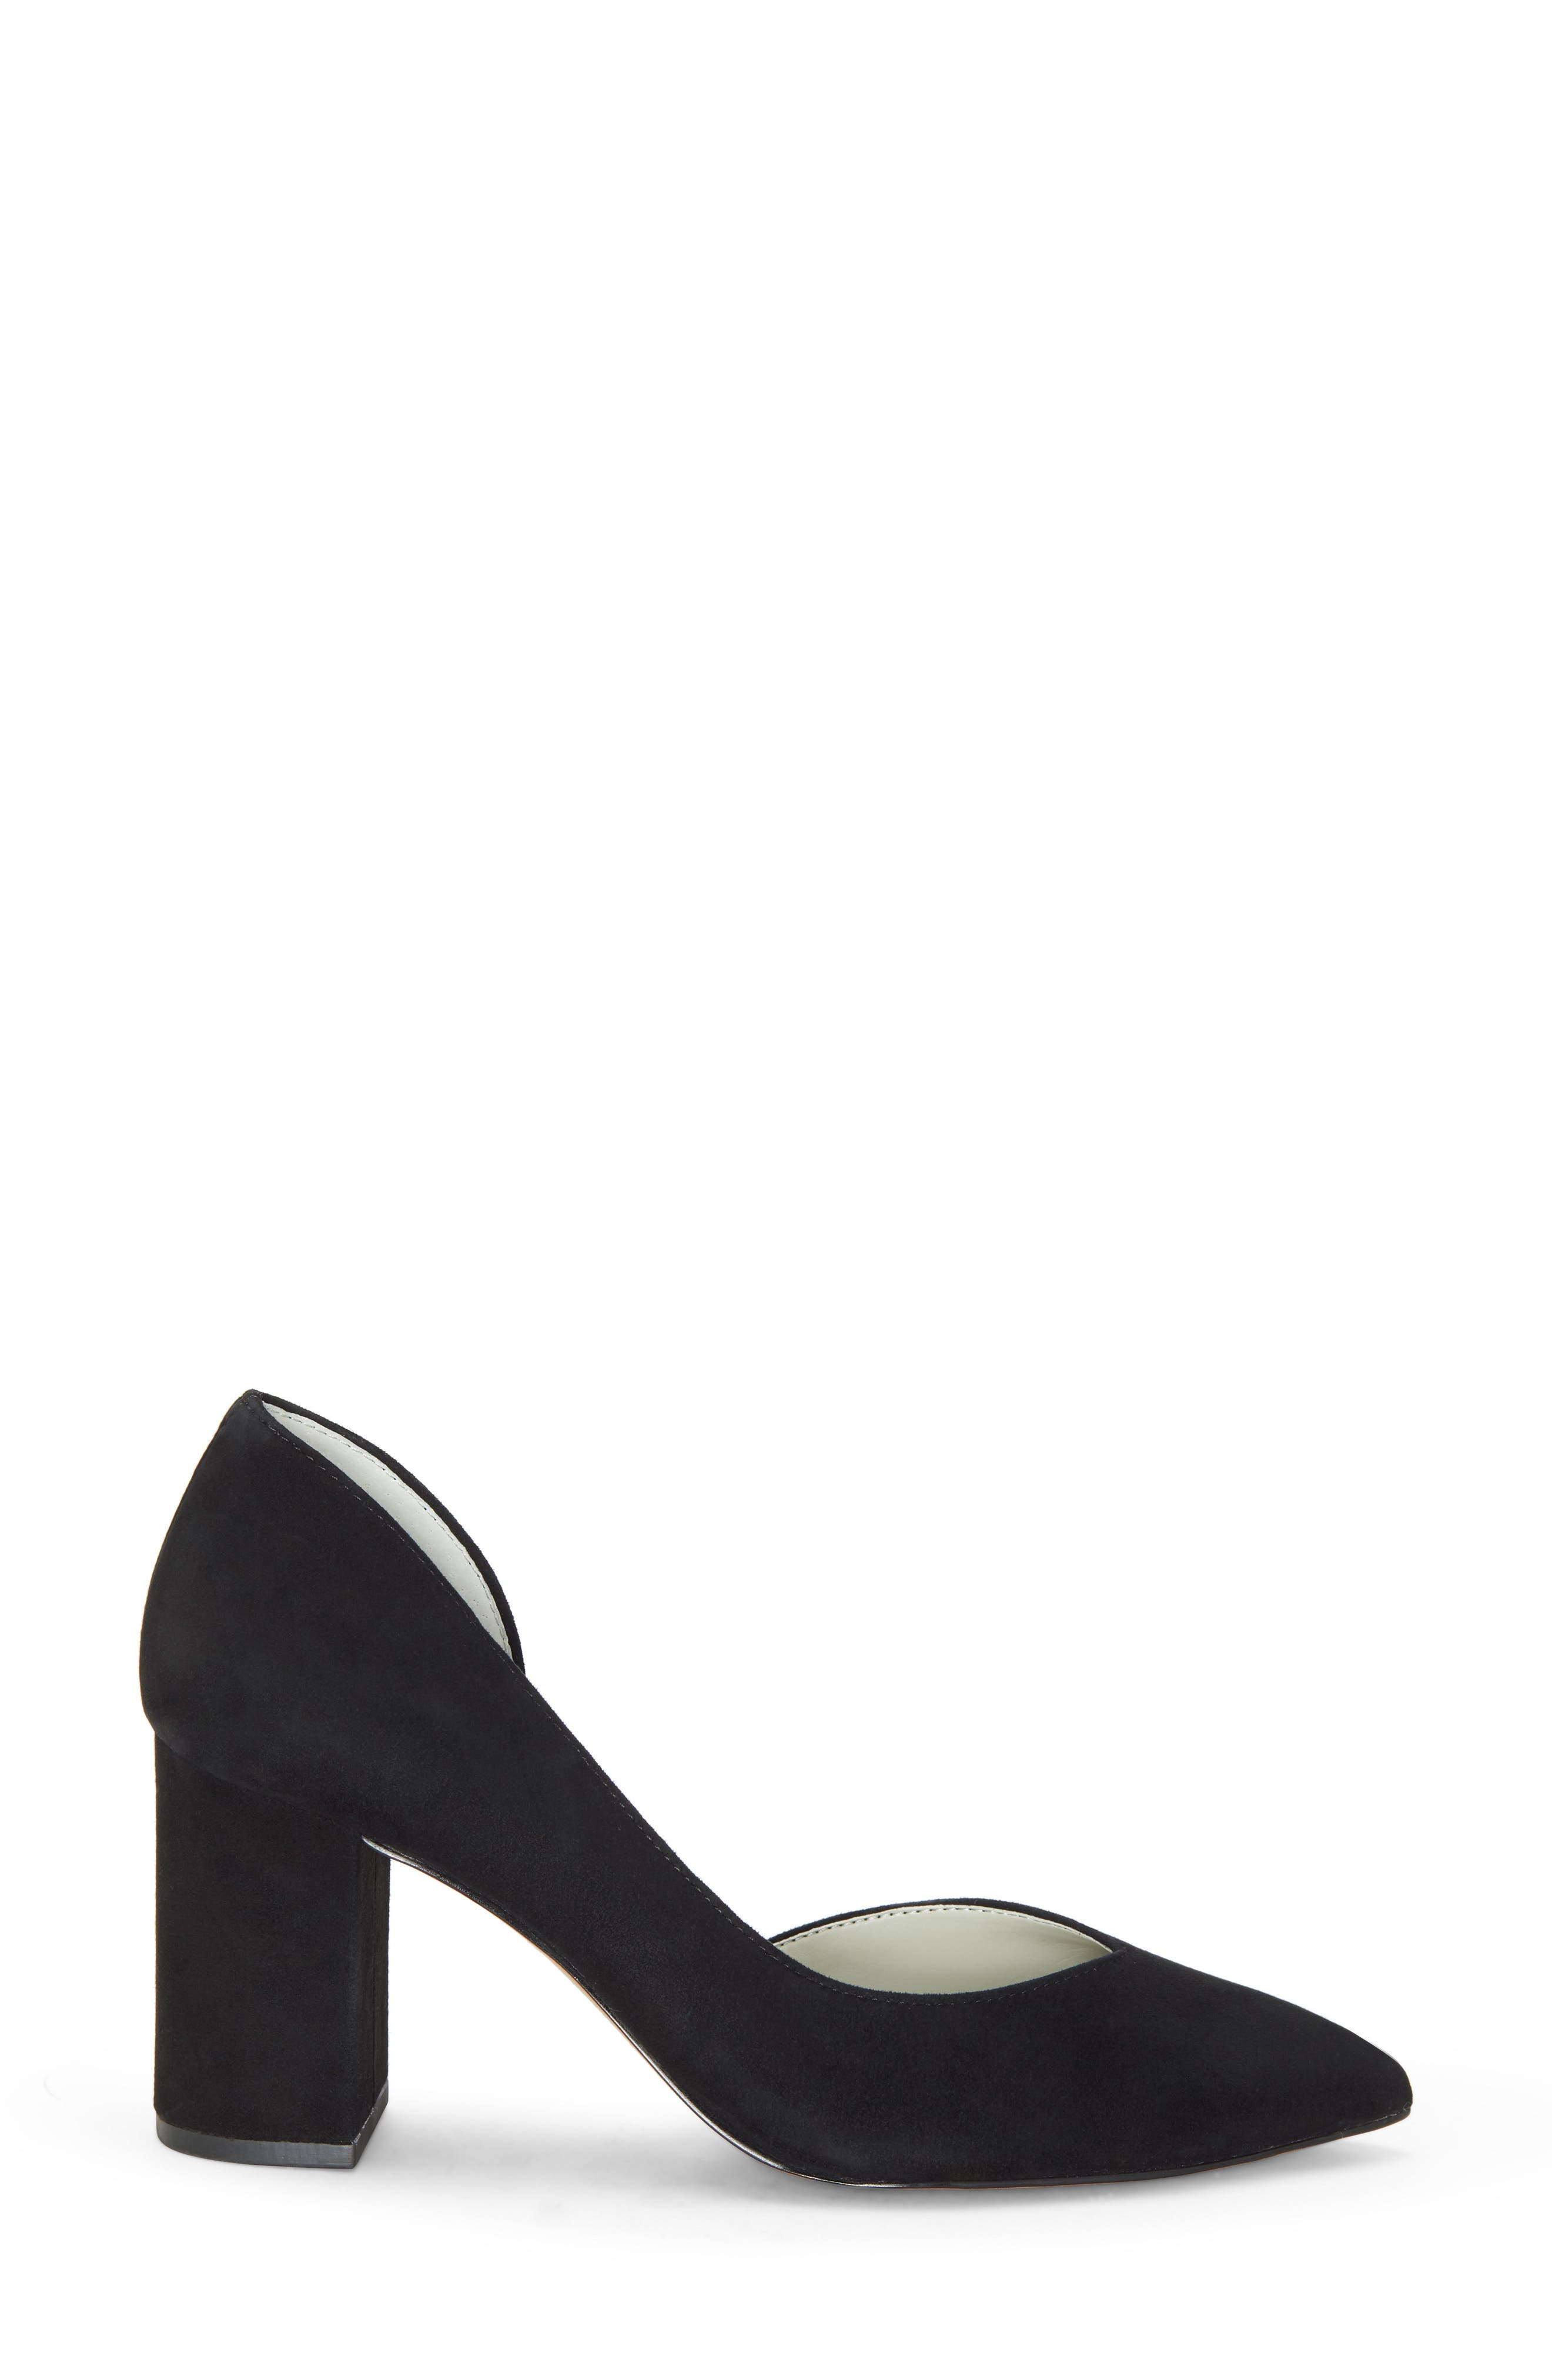 Sisteen Half d'Orsay Pump,                             Alternate thumbnail 3, color,                             BLACK SUEDE